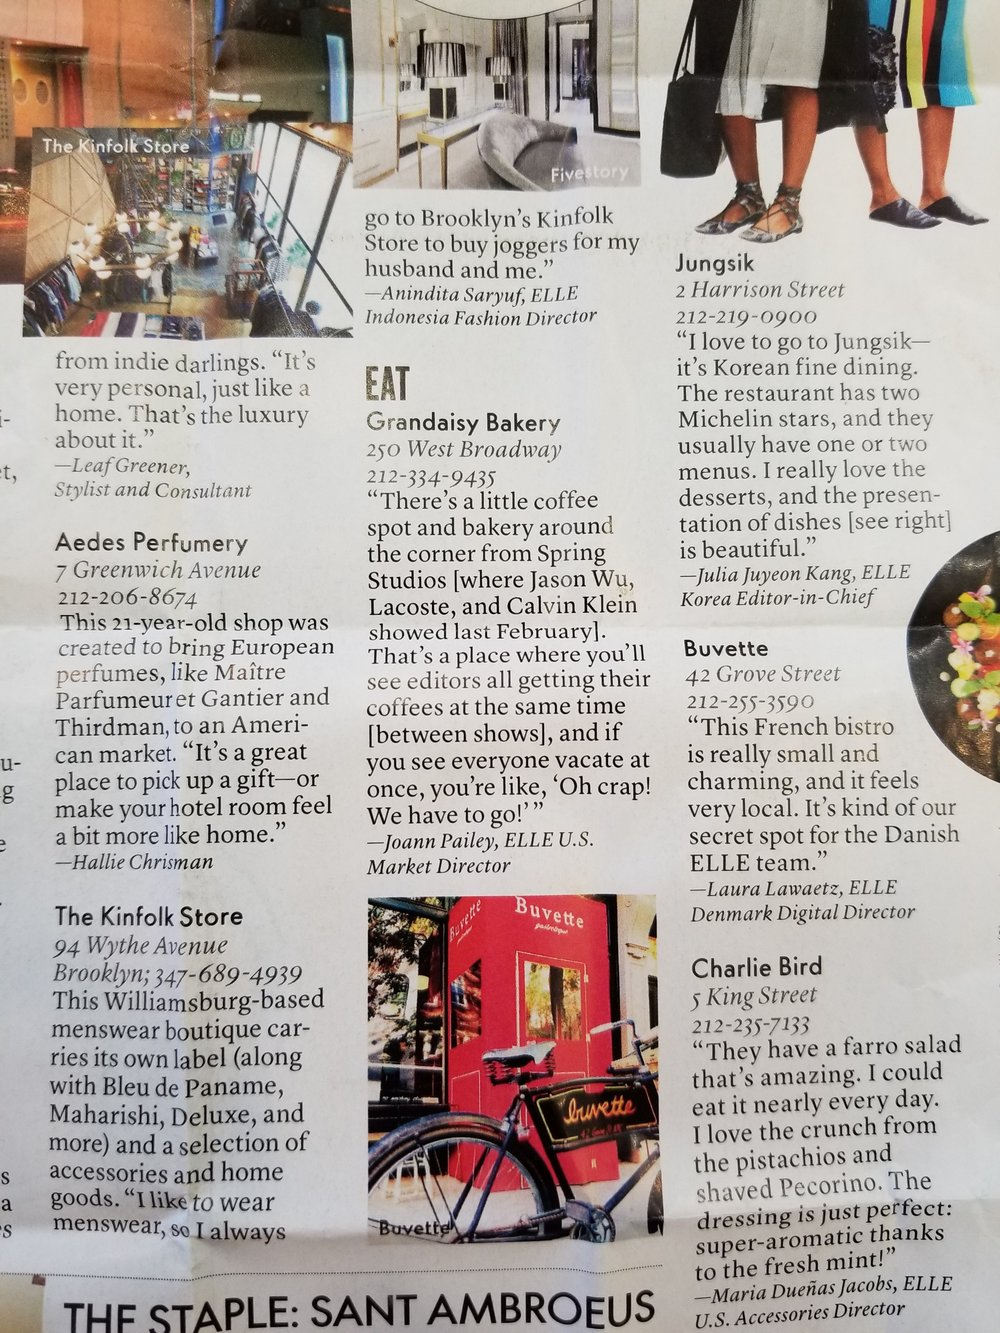 EAT @ GRANDAISY - Our feature in Elle Magazine.